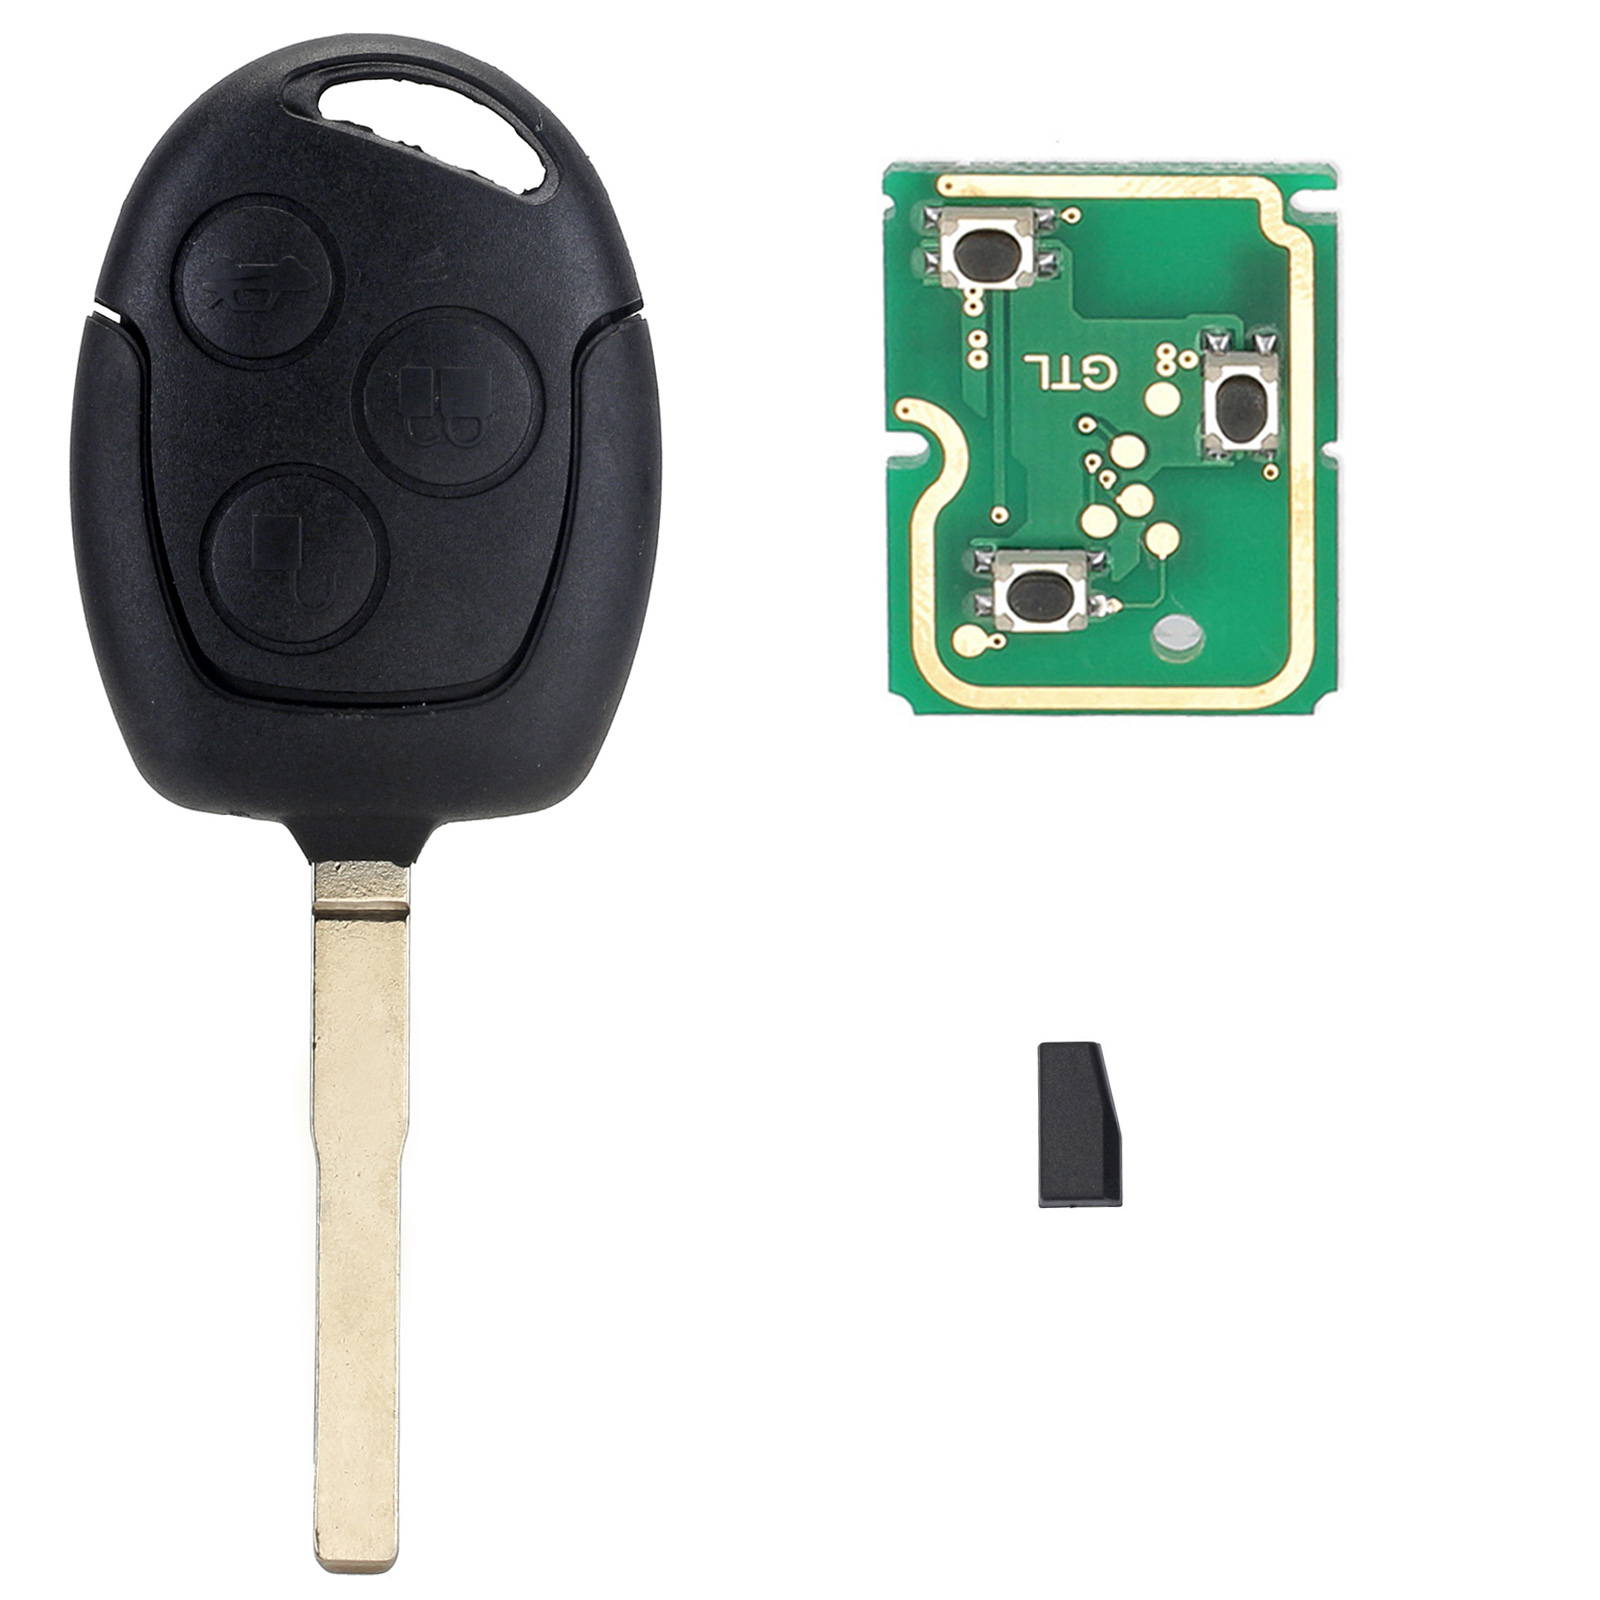 3 buttons remote car key 433mhz chip fob hu101 for ford fusion focus fiesta c